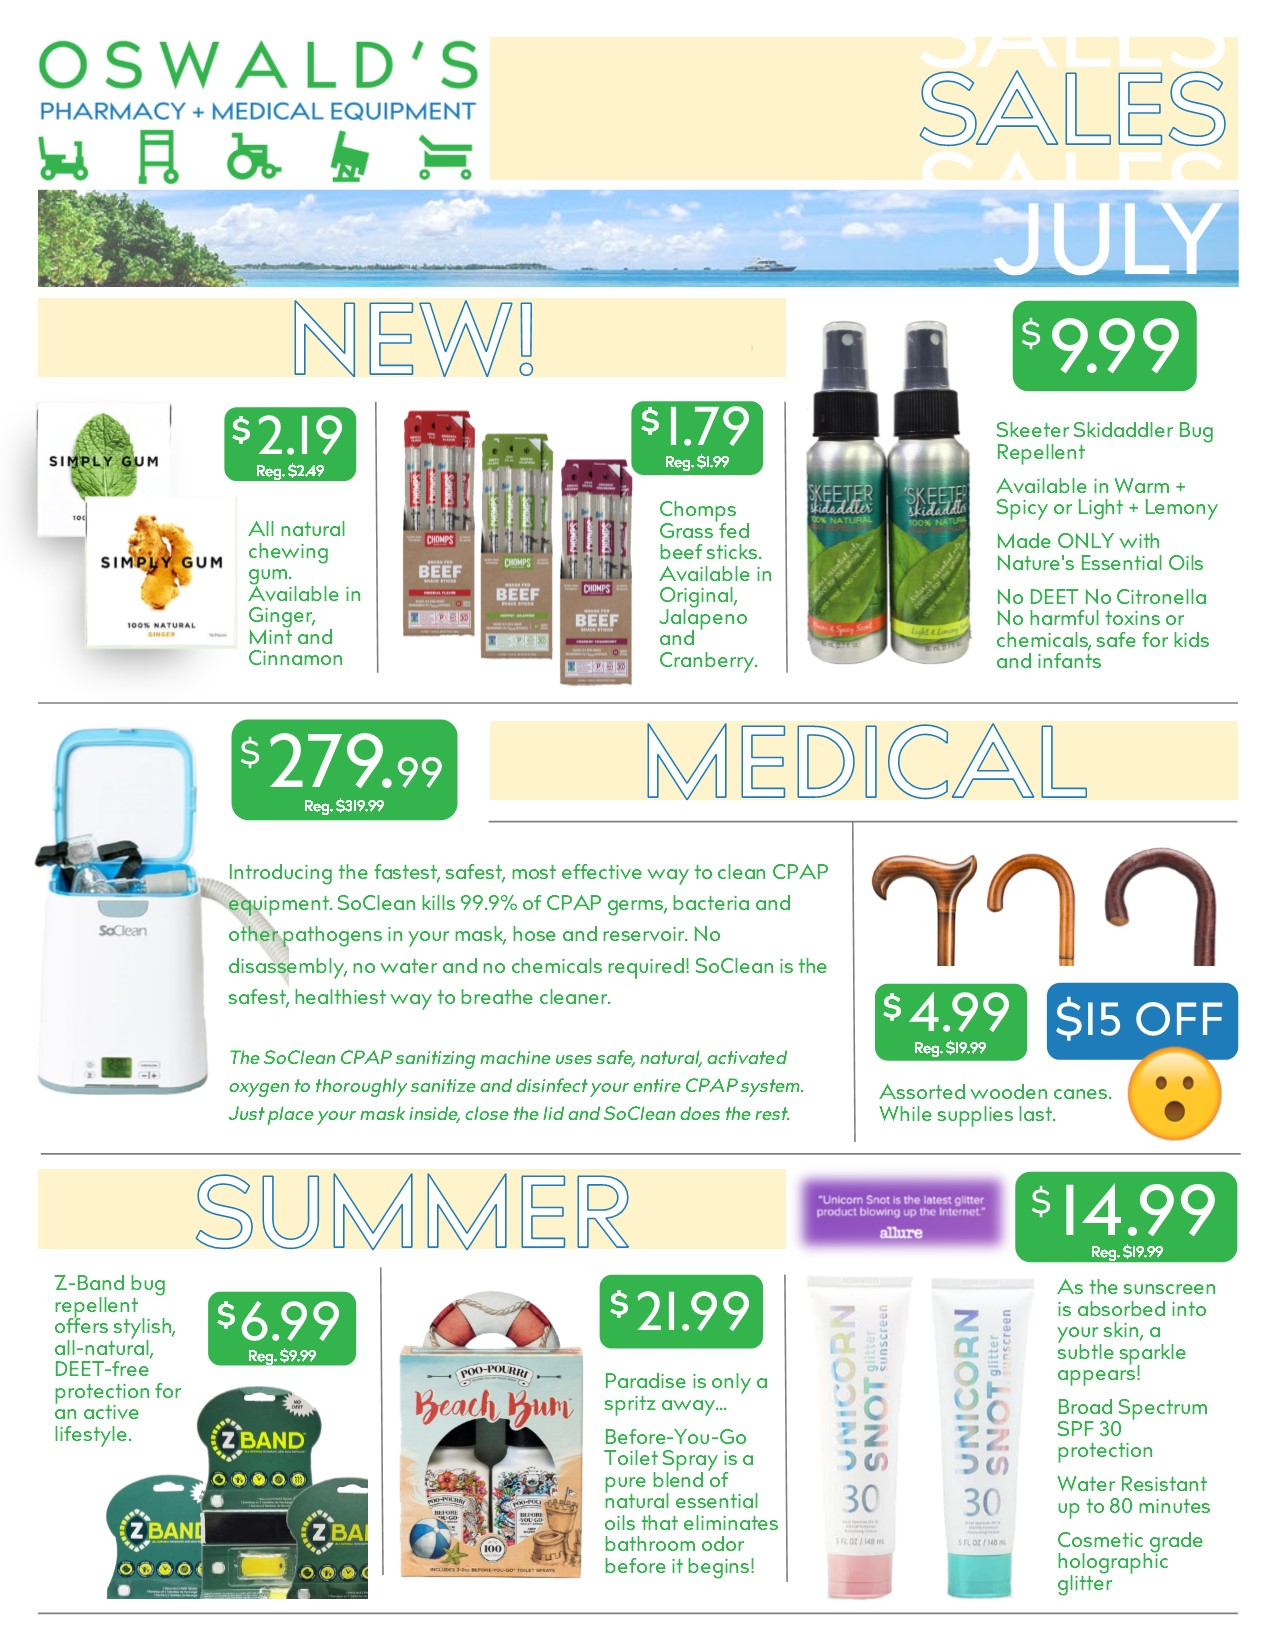 The Oswald's Promotions flyer from July 2018. Focuses on Sidewalk sale deals. Page 1.